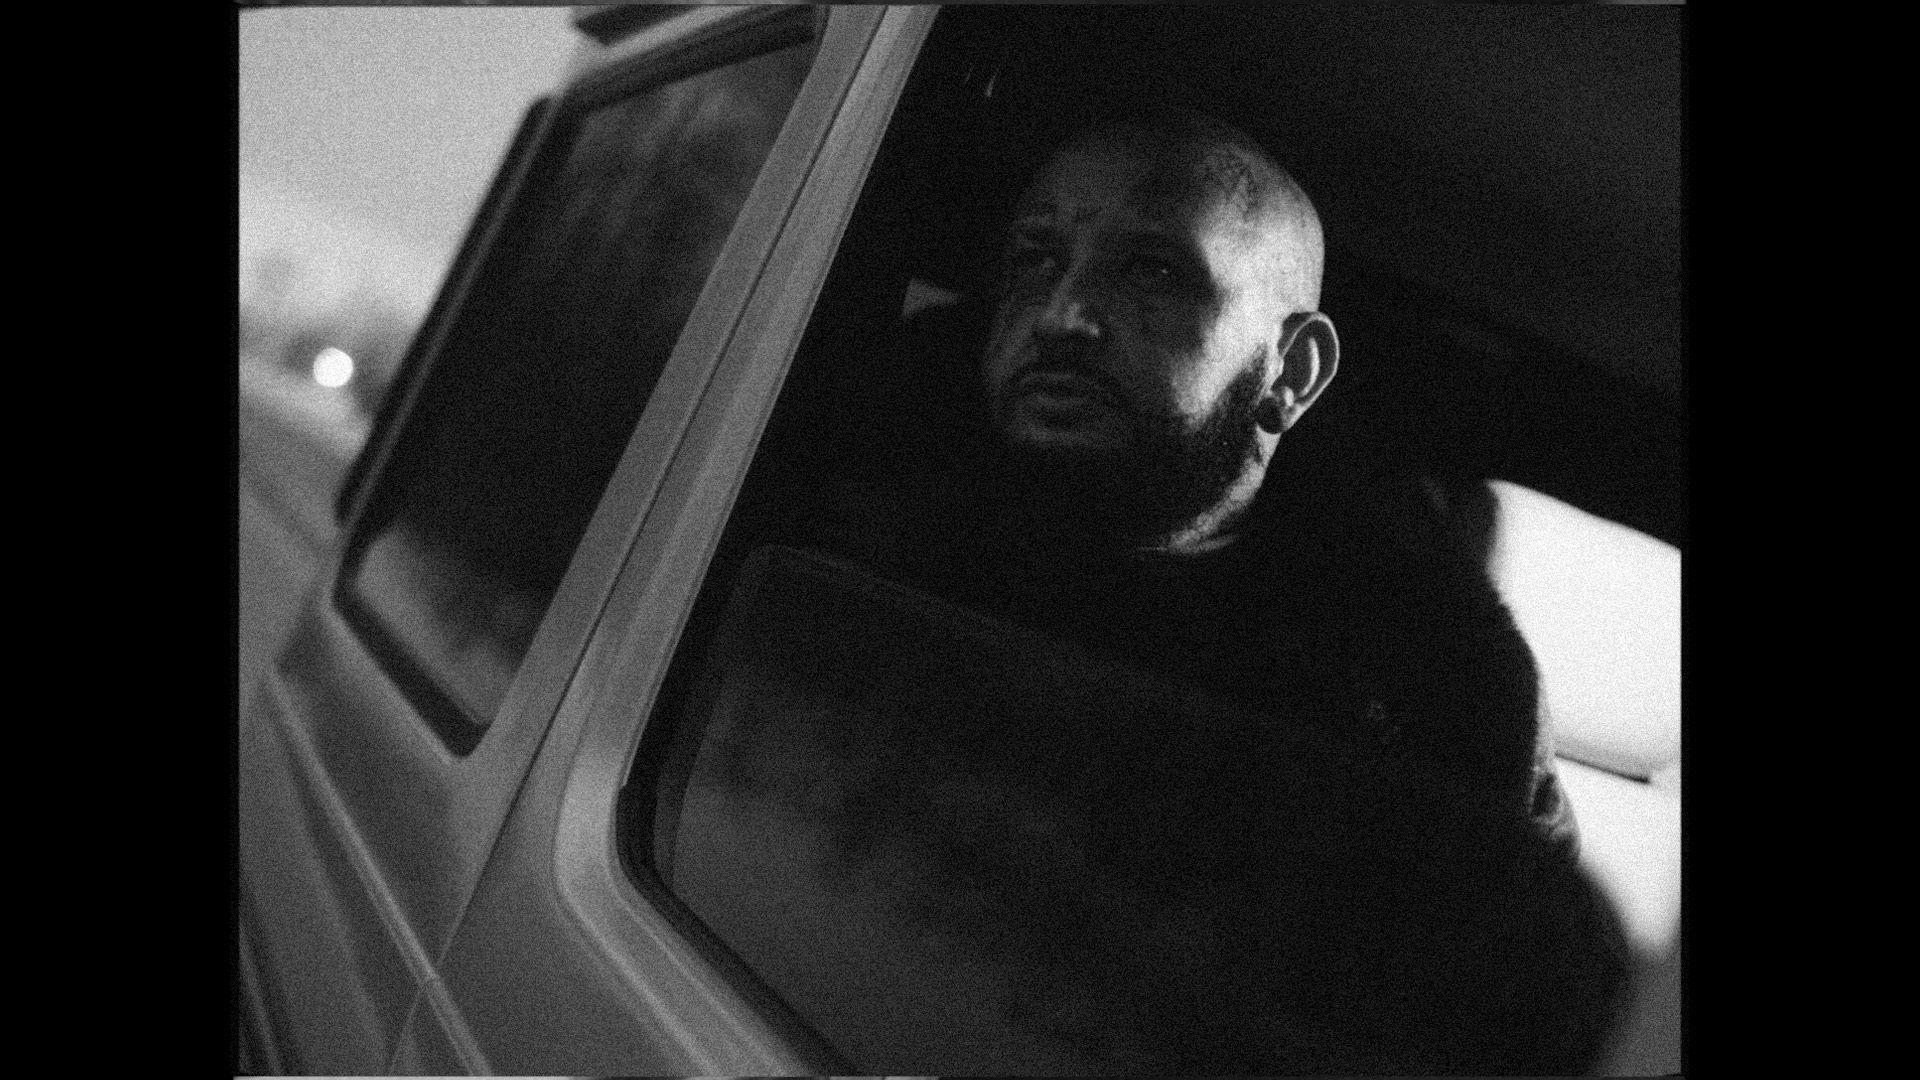 rapper Souldia in car looking out the window wearing sinter coat for his music video Rouge Neige filmed by Les Gamins featuring Sinik, Seth Gueko and Rick Pagano